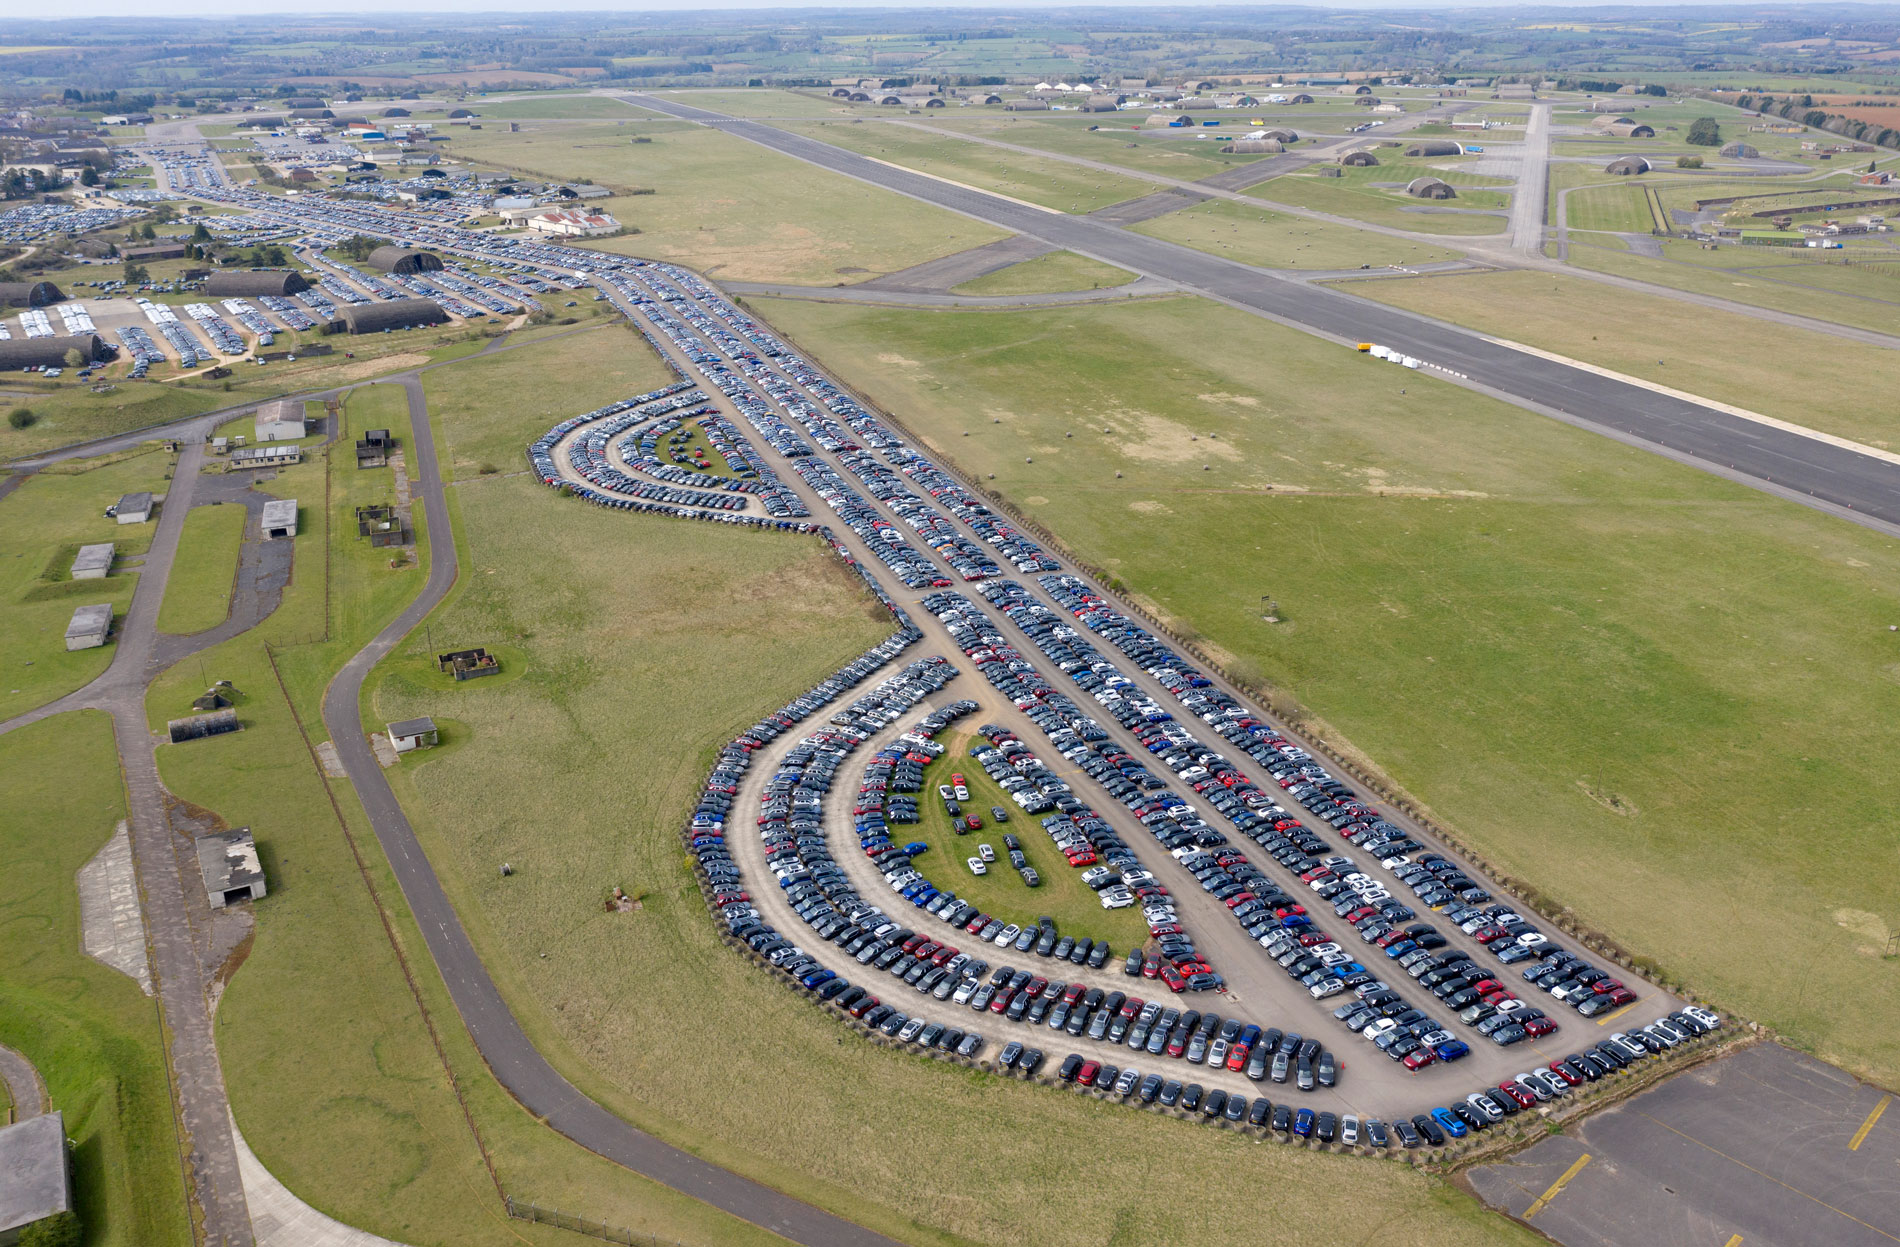 Bicester unsold cars